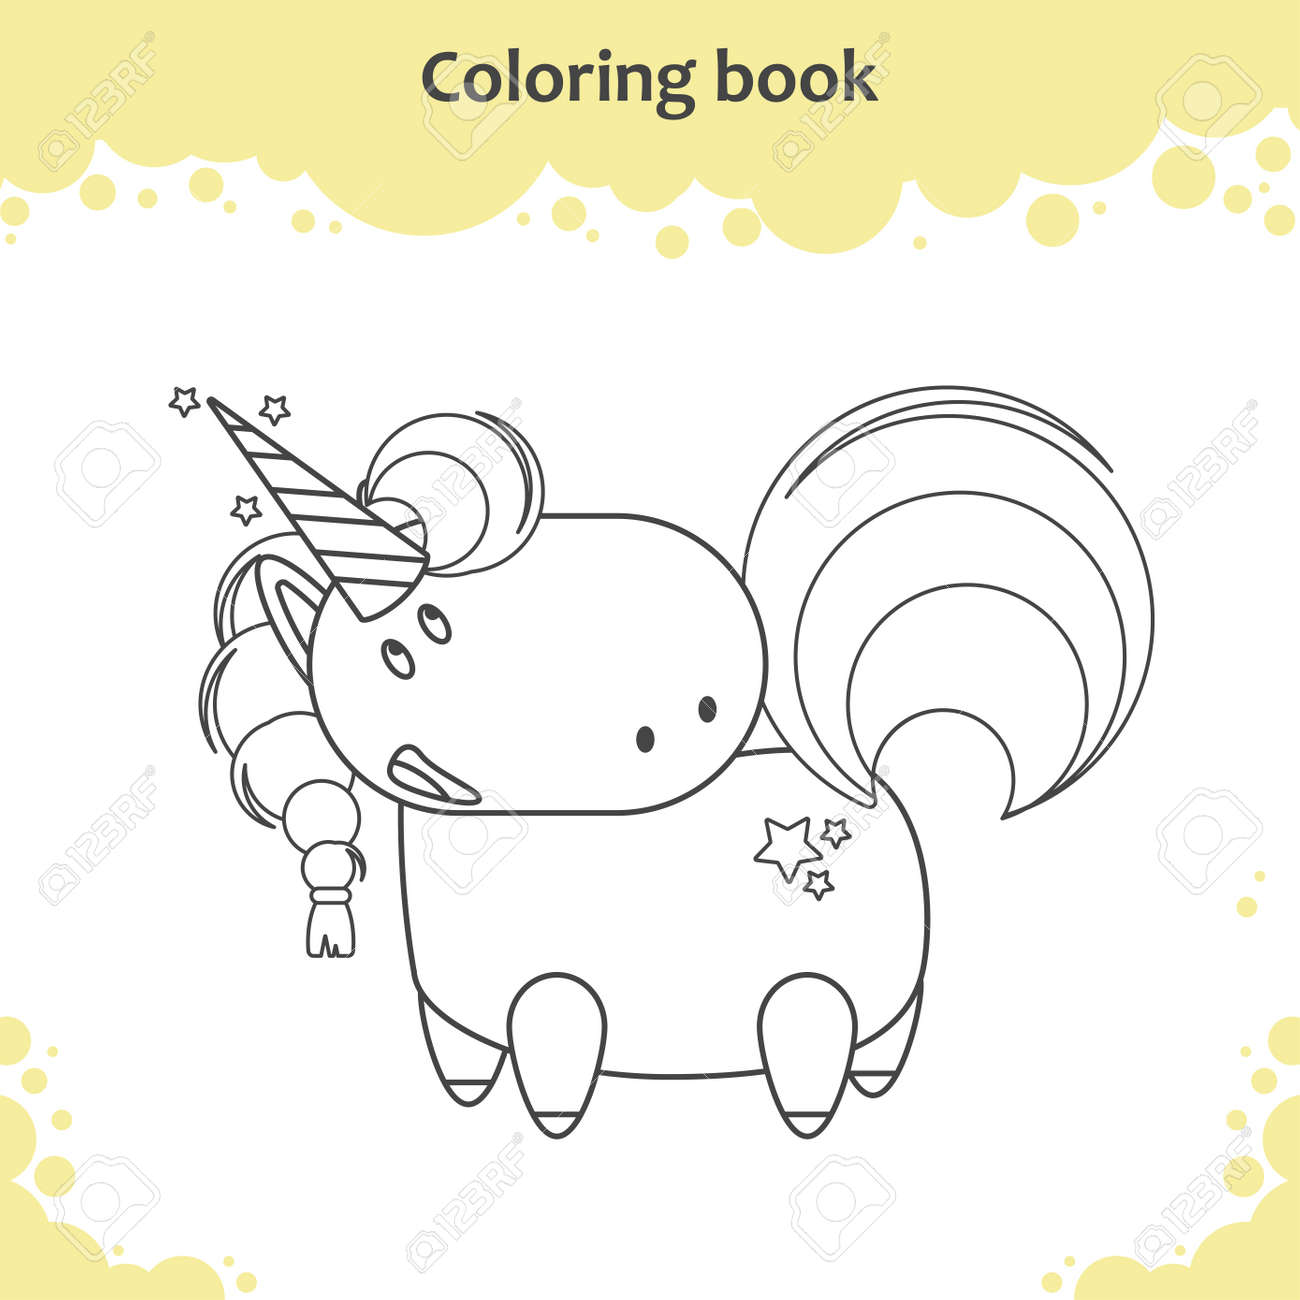 Color The Cute Cartoon Unicorn Coloring Page For Kids Vector